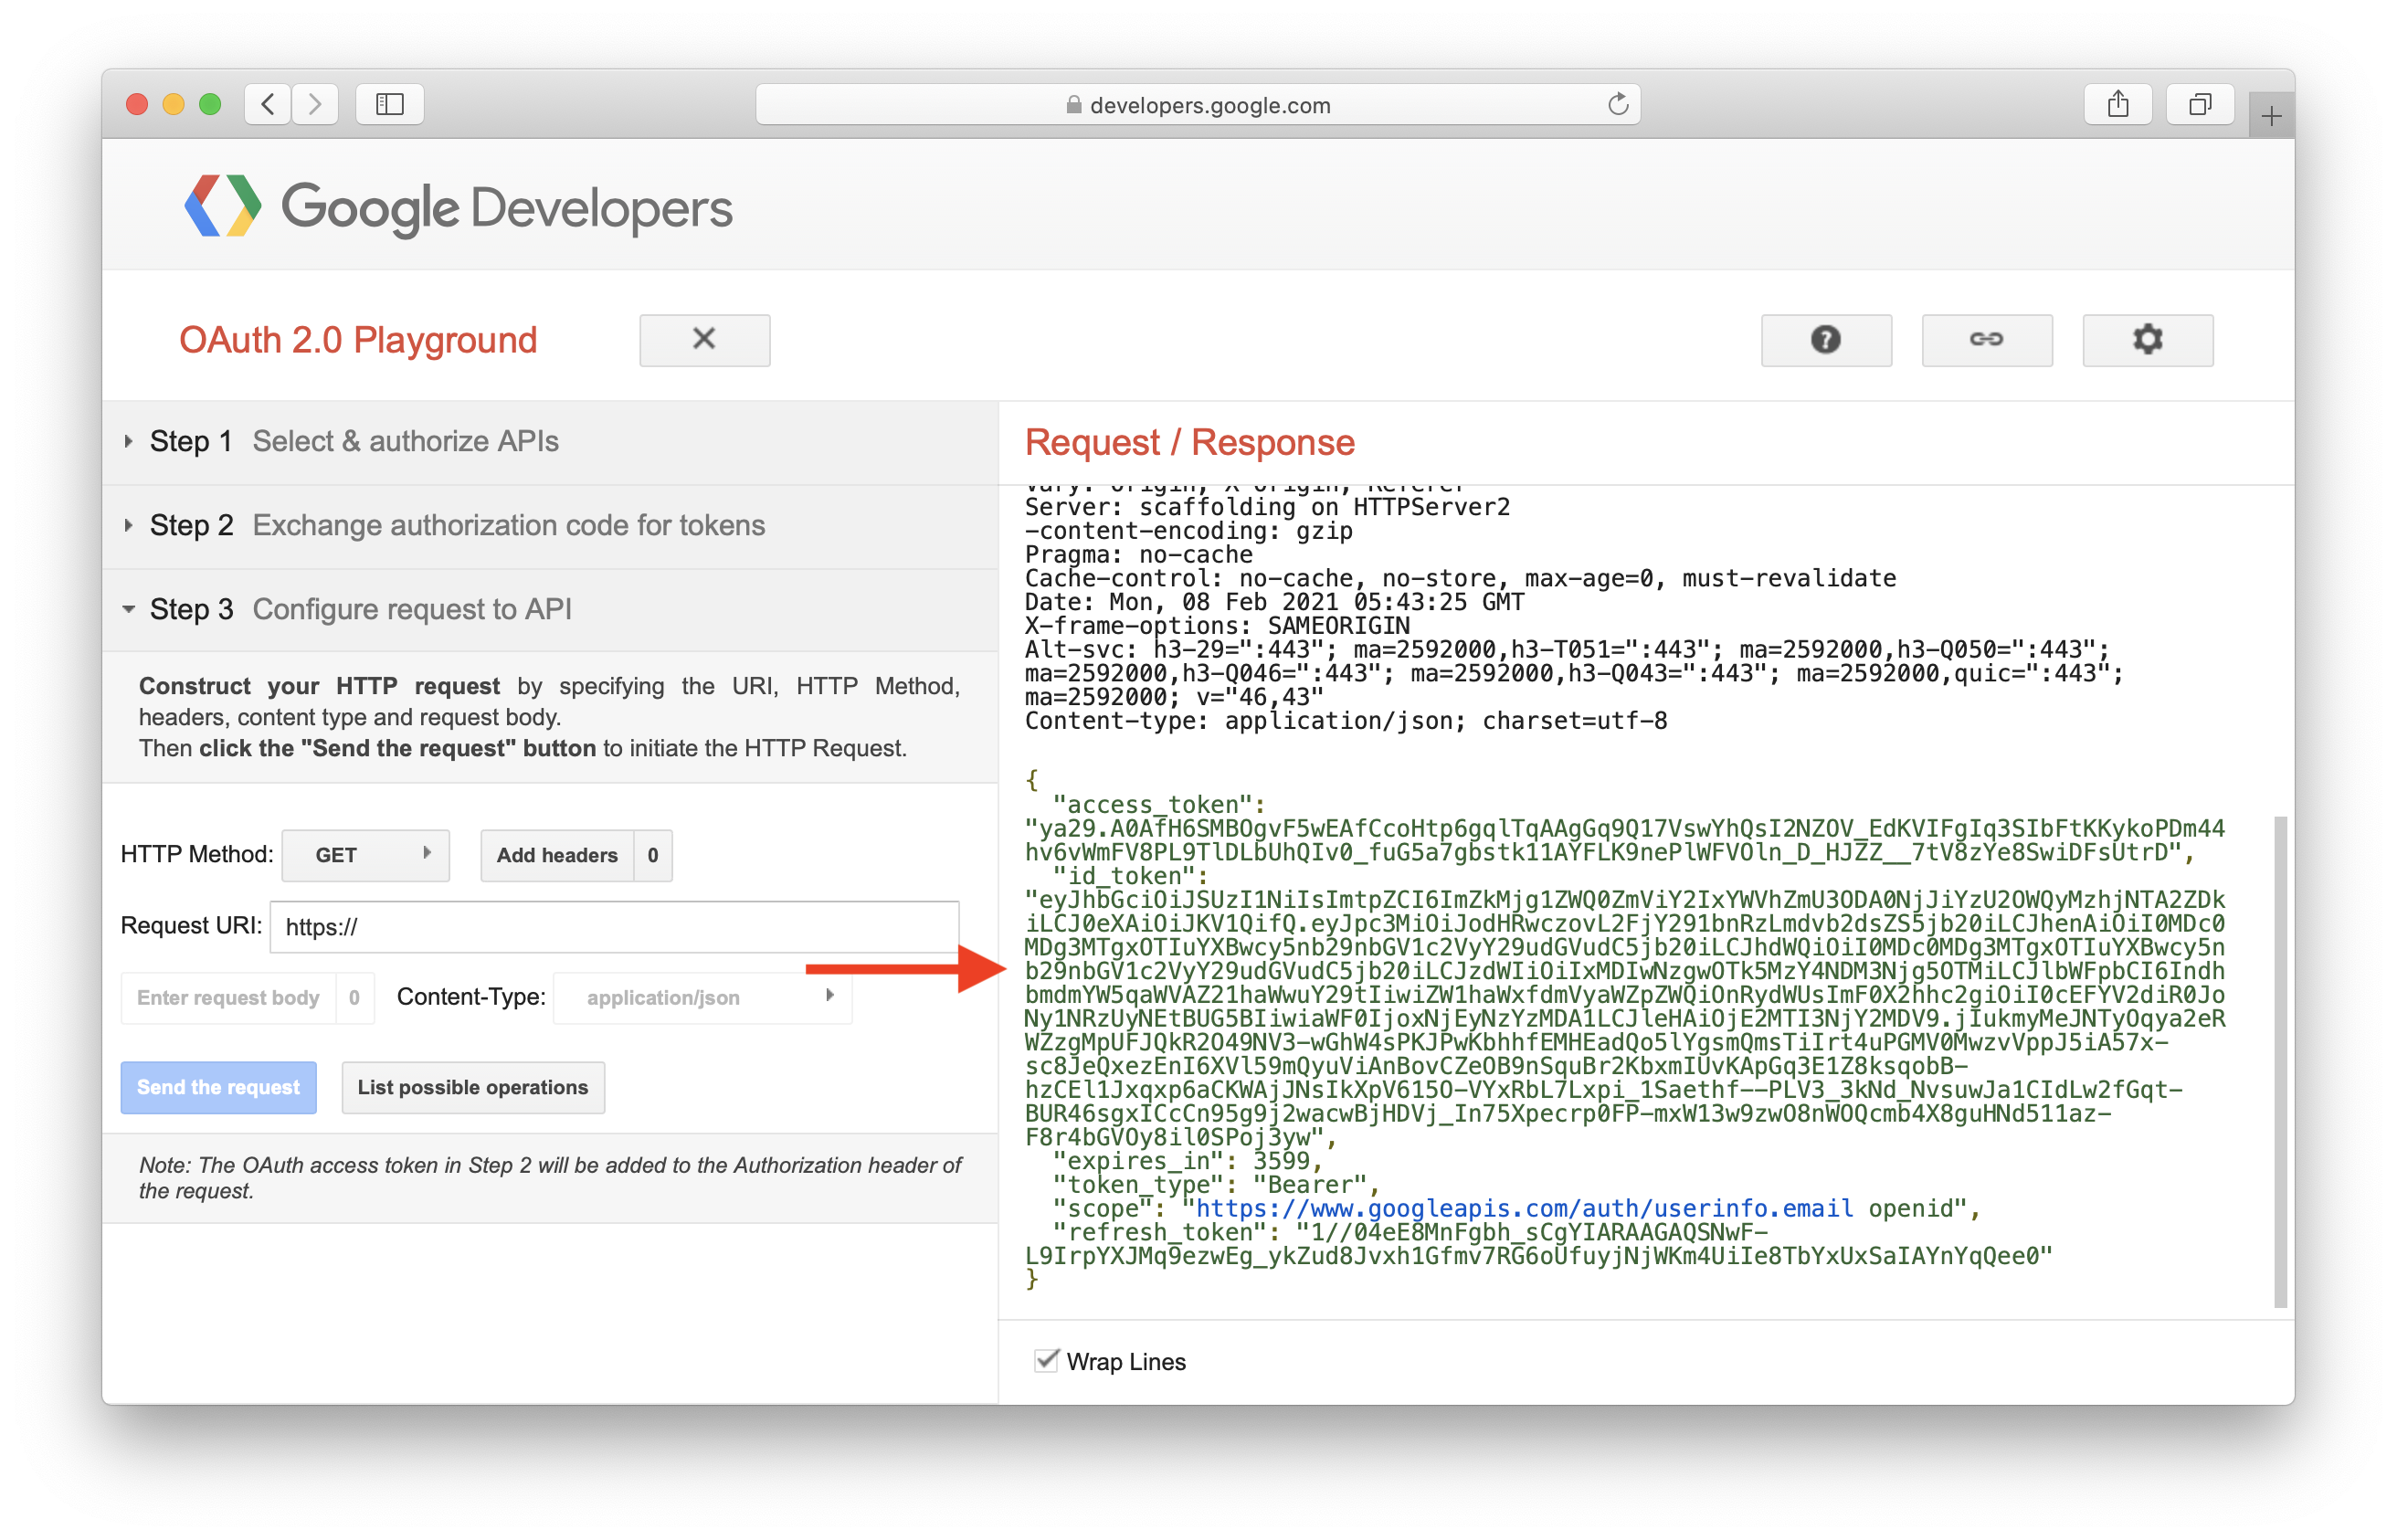 Copy access token for users logged in with Google